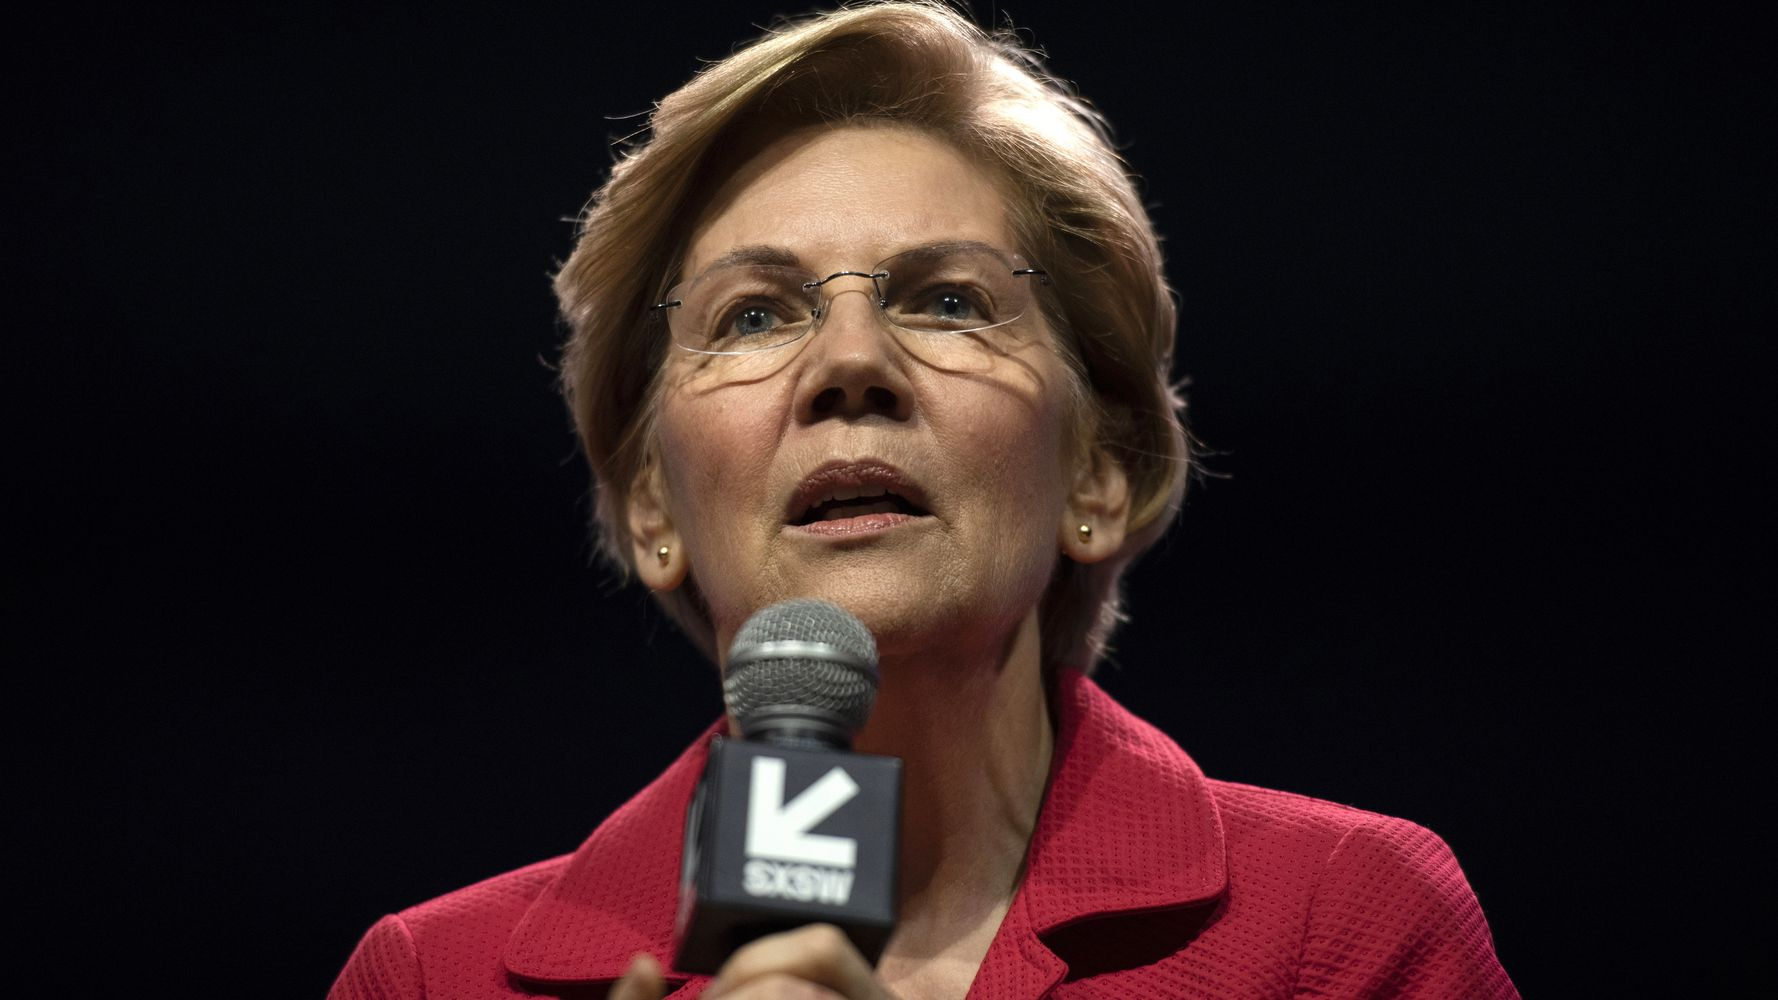 5 Refreshing Lessons From Elizabeth Warren's Personal